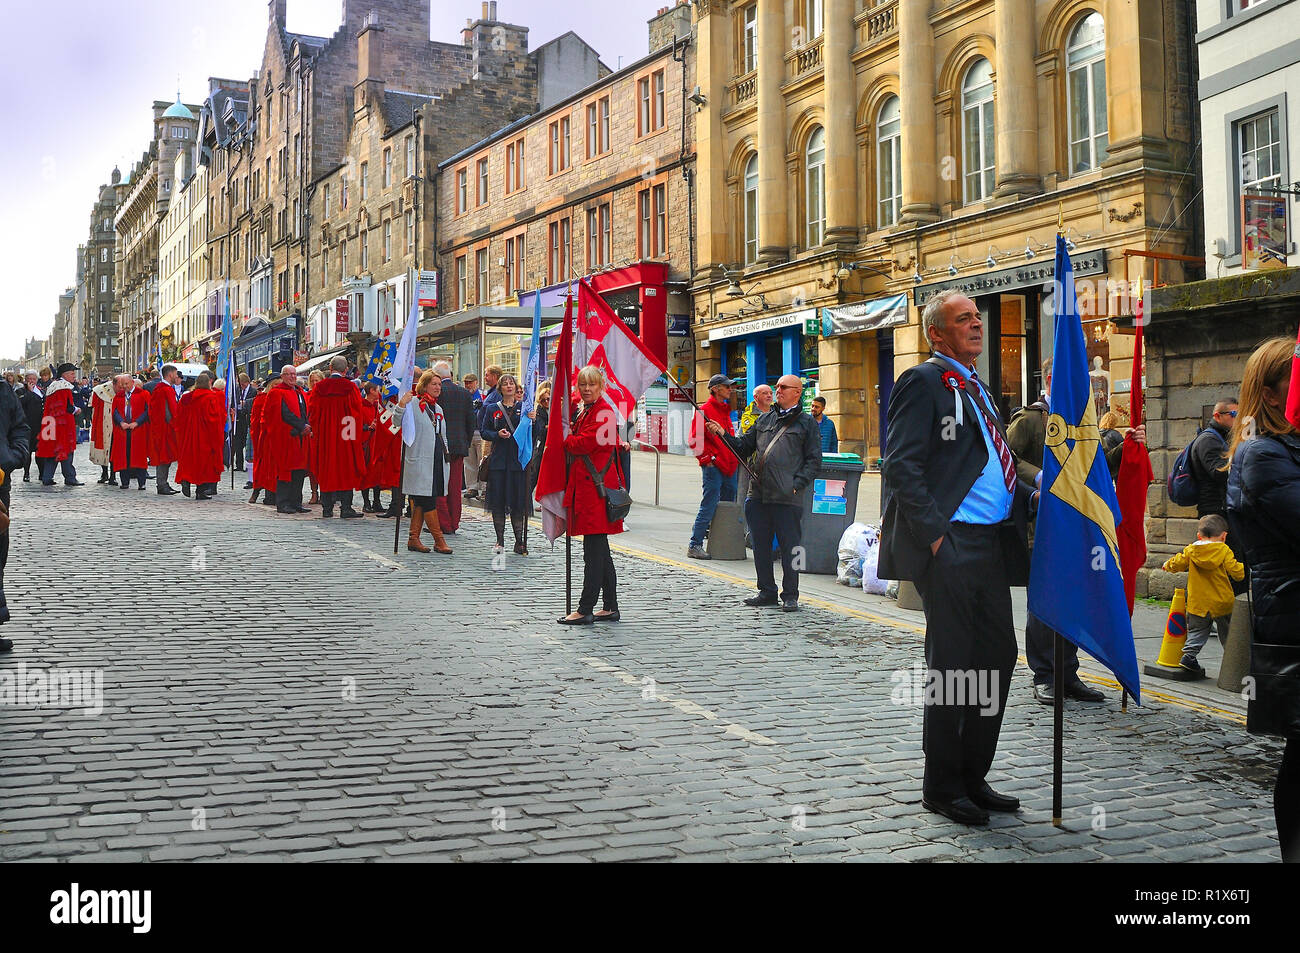 Marchers on the Riding of the Marches, Edinburgh, Scotland - Stock Image